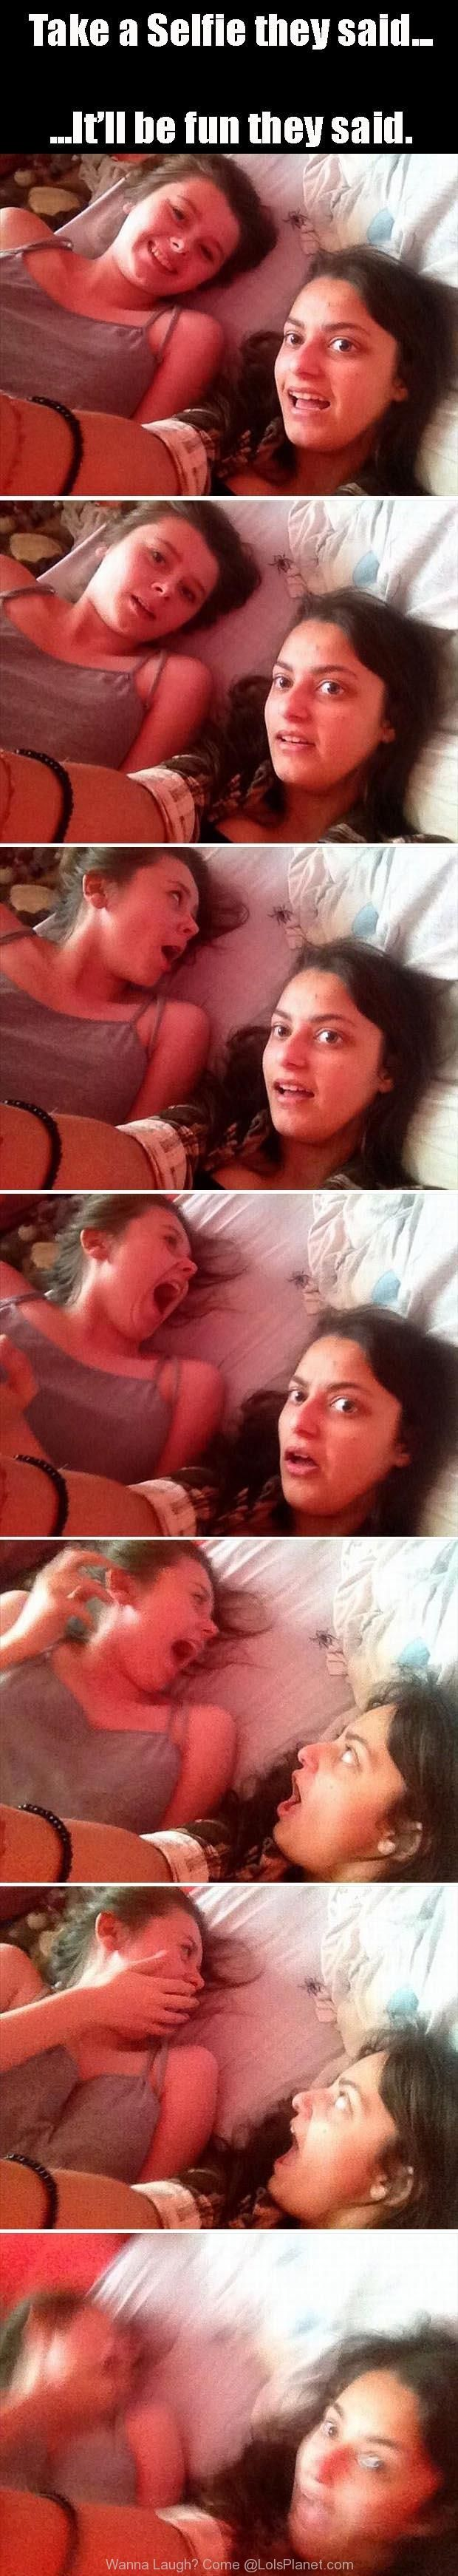 Take selfie, they said. it will be fun they said #funny #pics #pinoftheday #lolsplanet ....Check more funny pics at http://lolsplanet.com